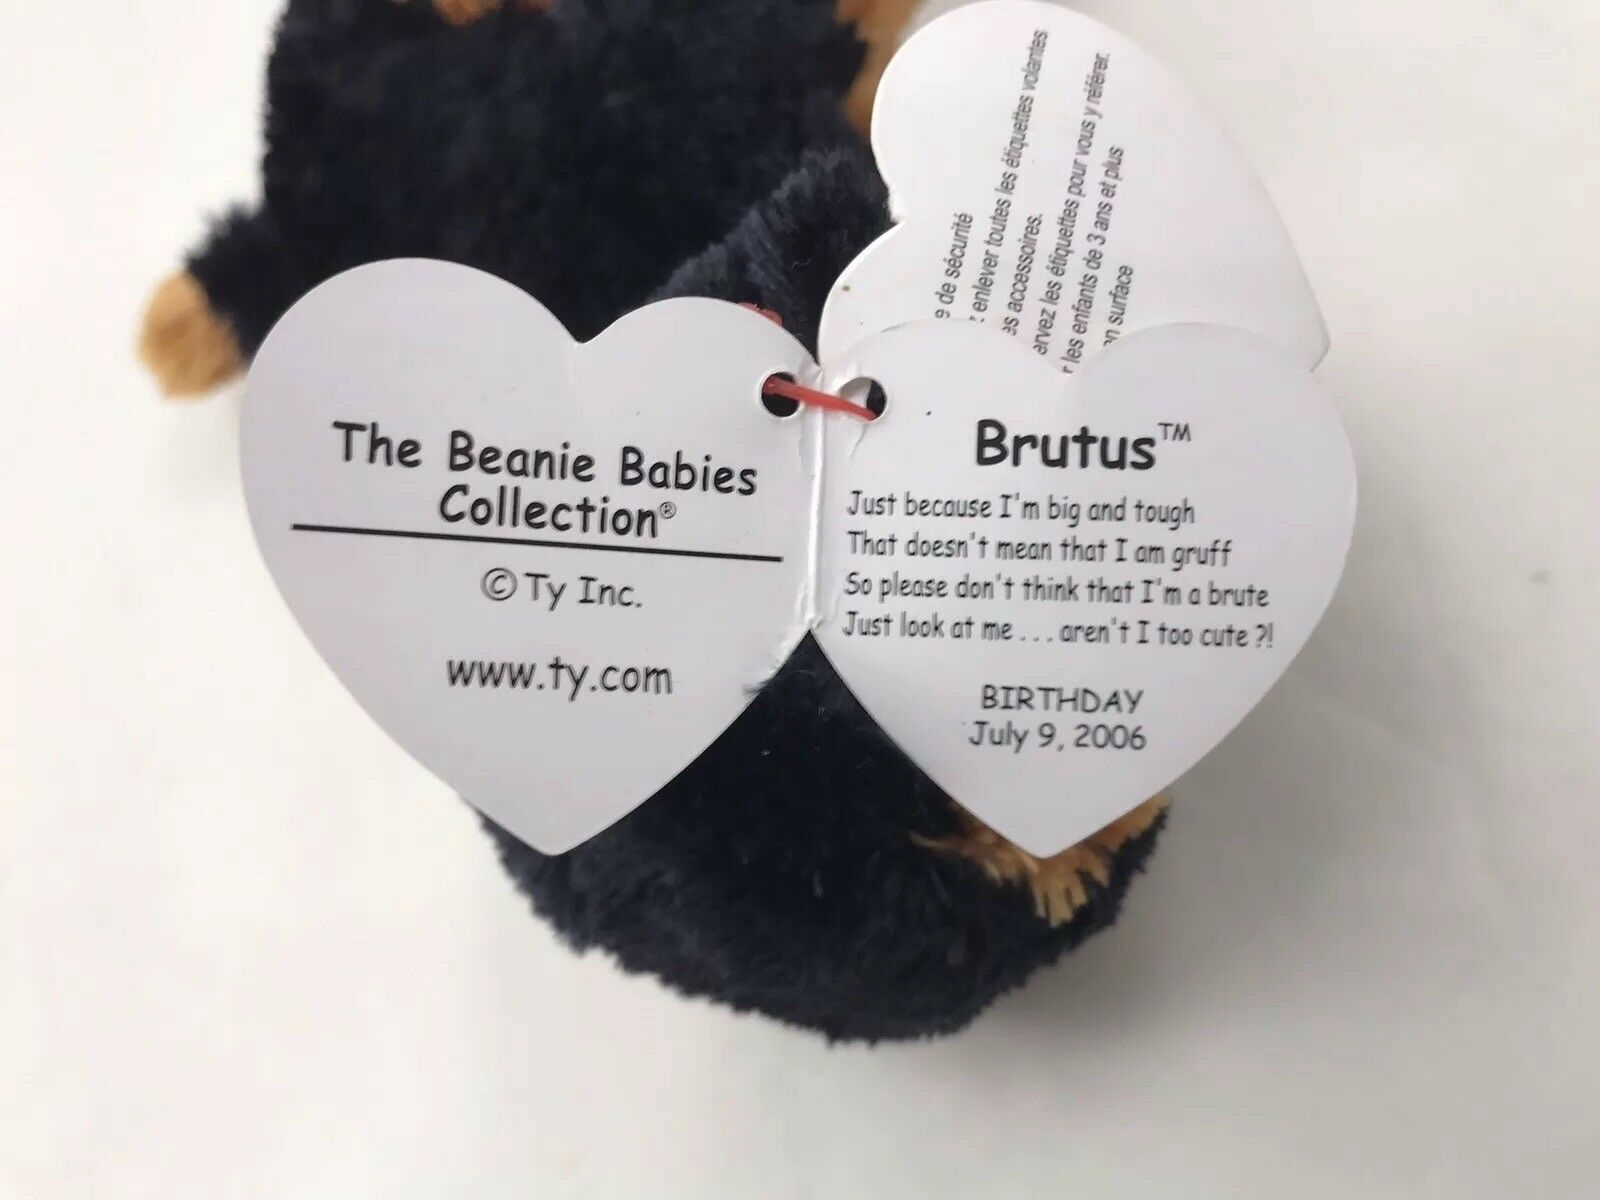 Ty Beanie Baby Babies Brutus The Rottweiler Dog New tag Plush Stuffed Toy  July 9 for sale online  618e1809217c